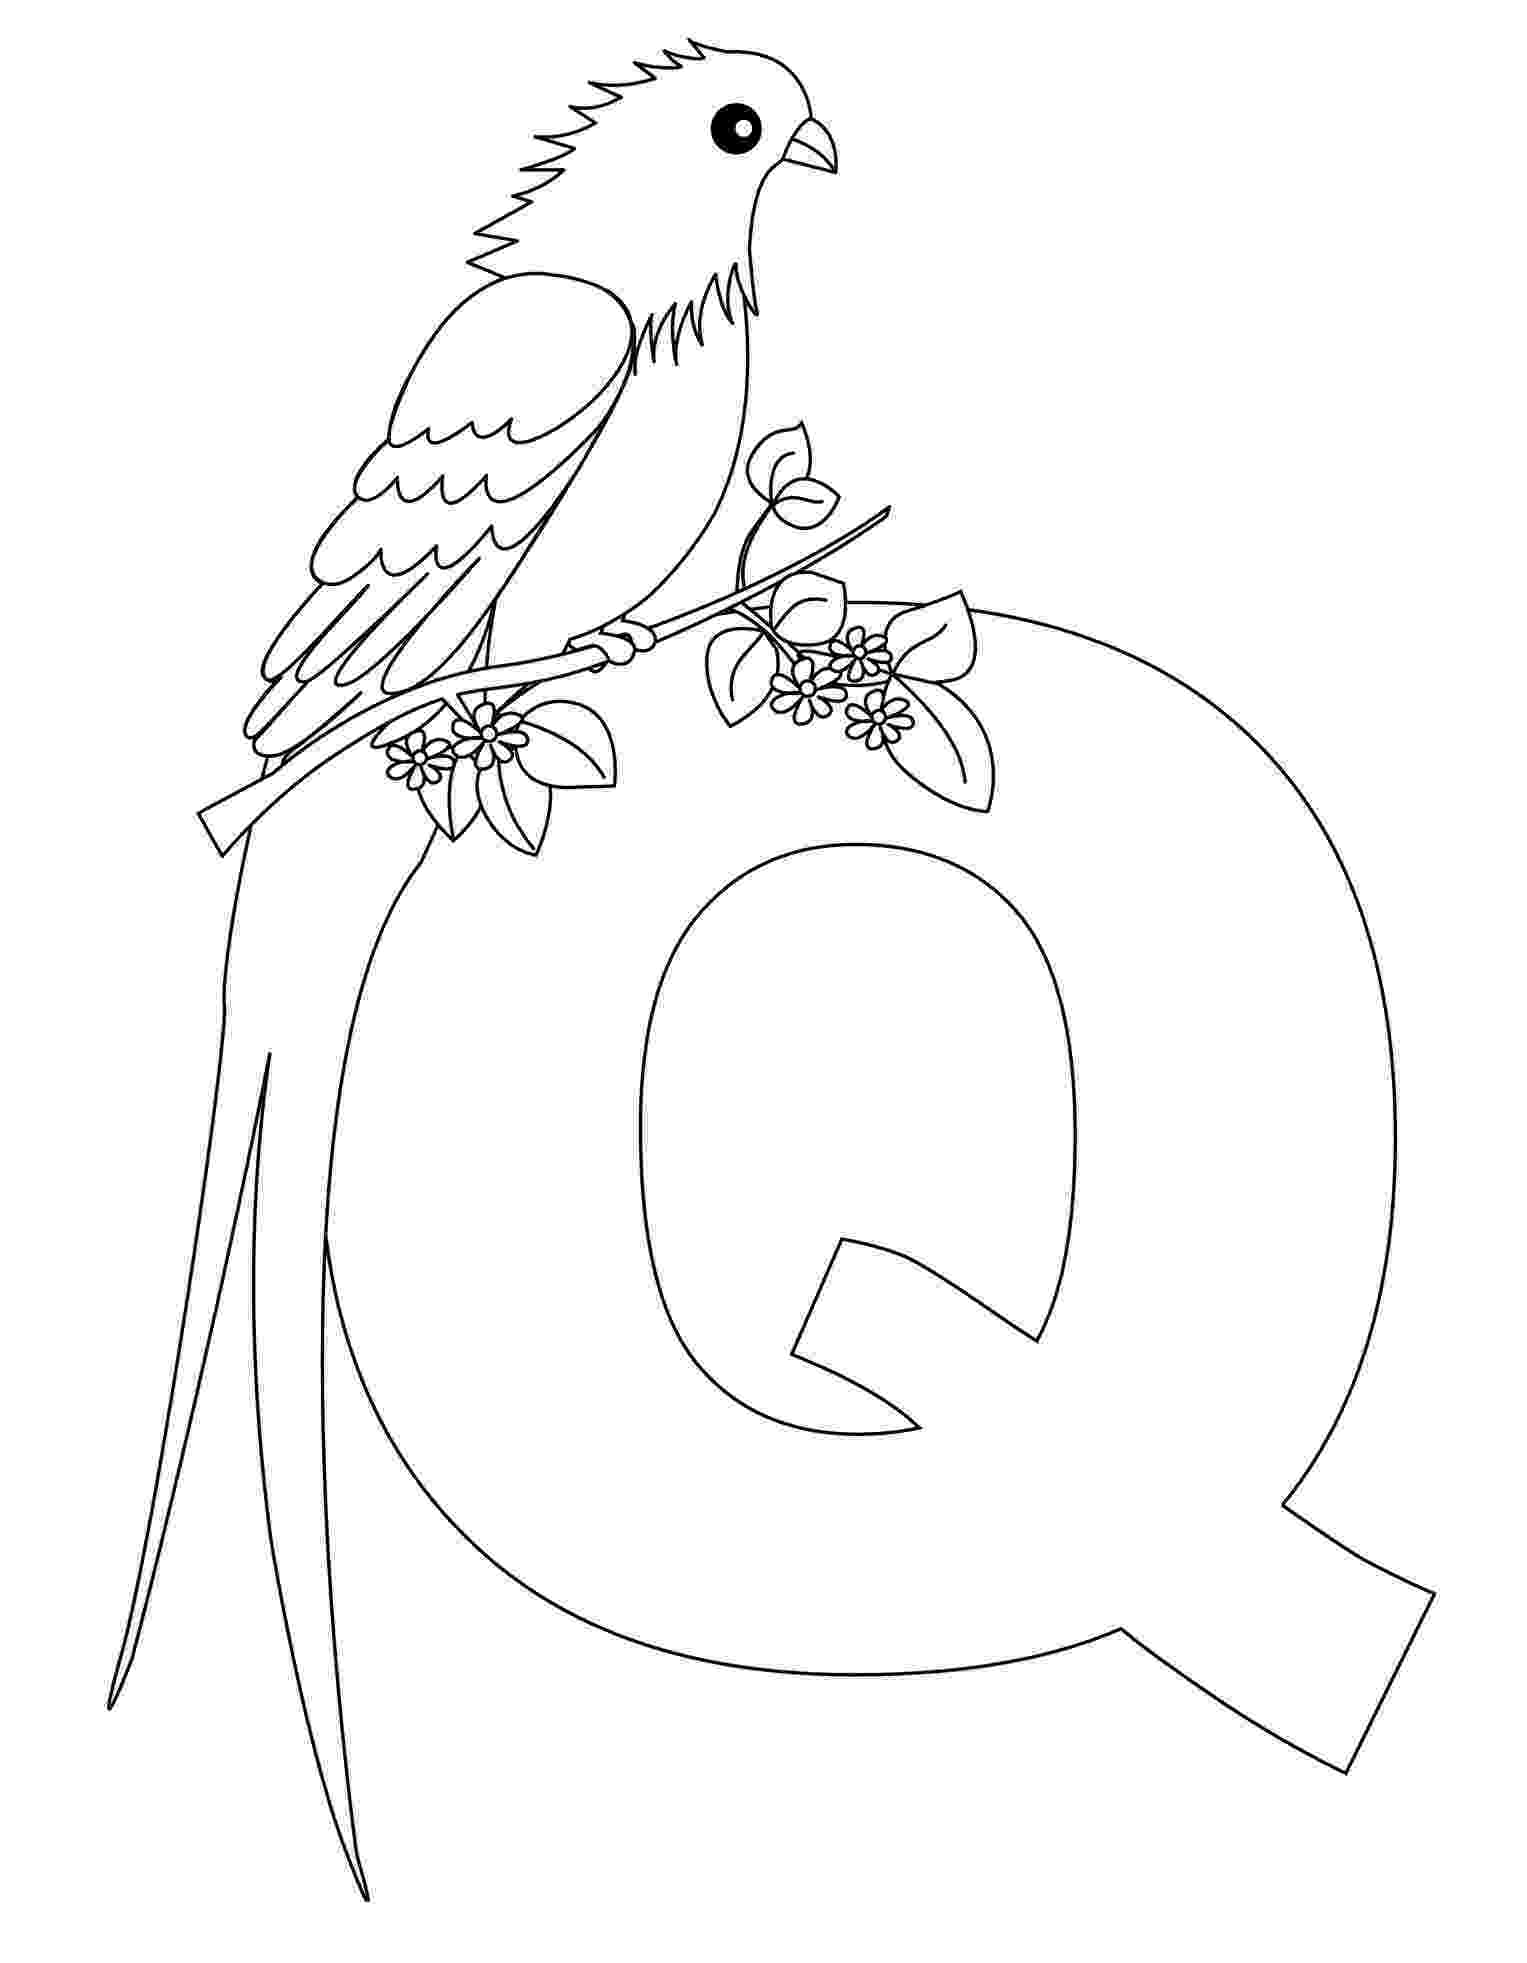 free printable letter q coloring pages free printable alphabet coloring pages for kids best q letter free coloring printable pages